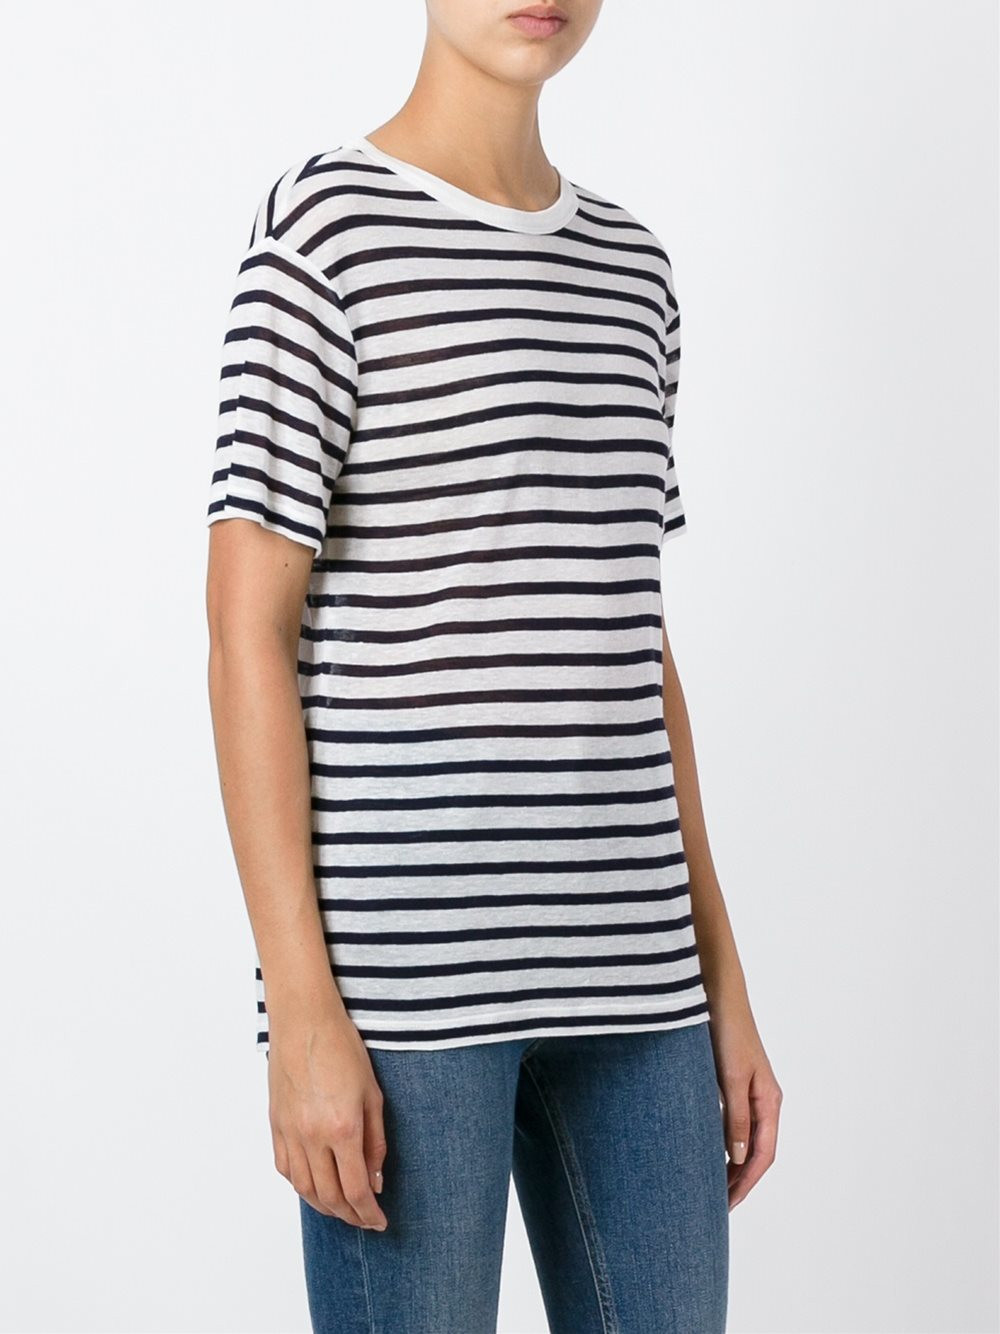 Lyst t by alexander wang striped t shirt in black for Alexander wang t shirts